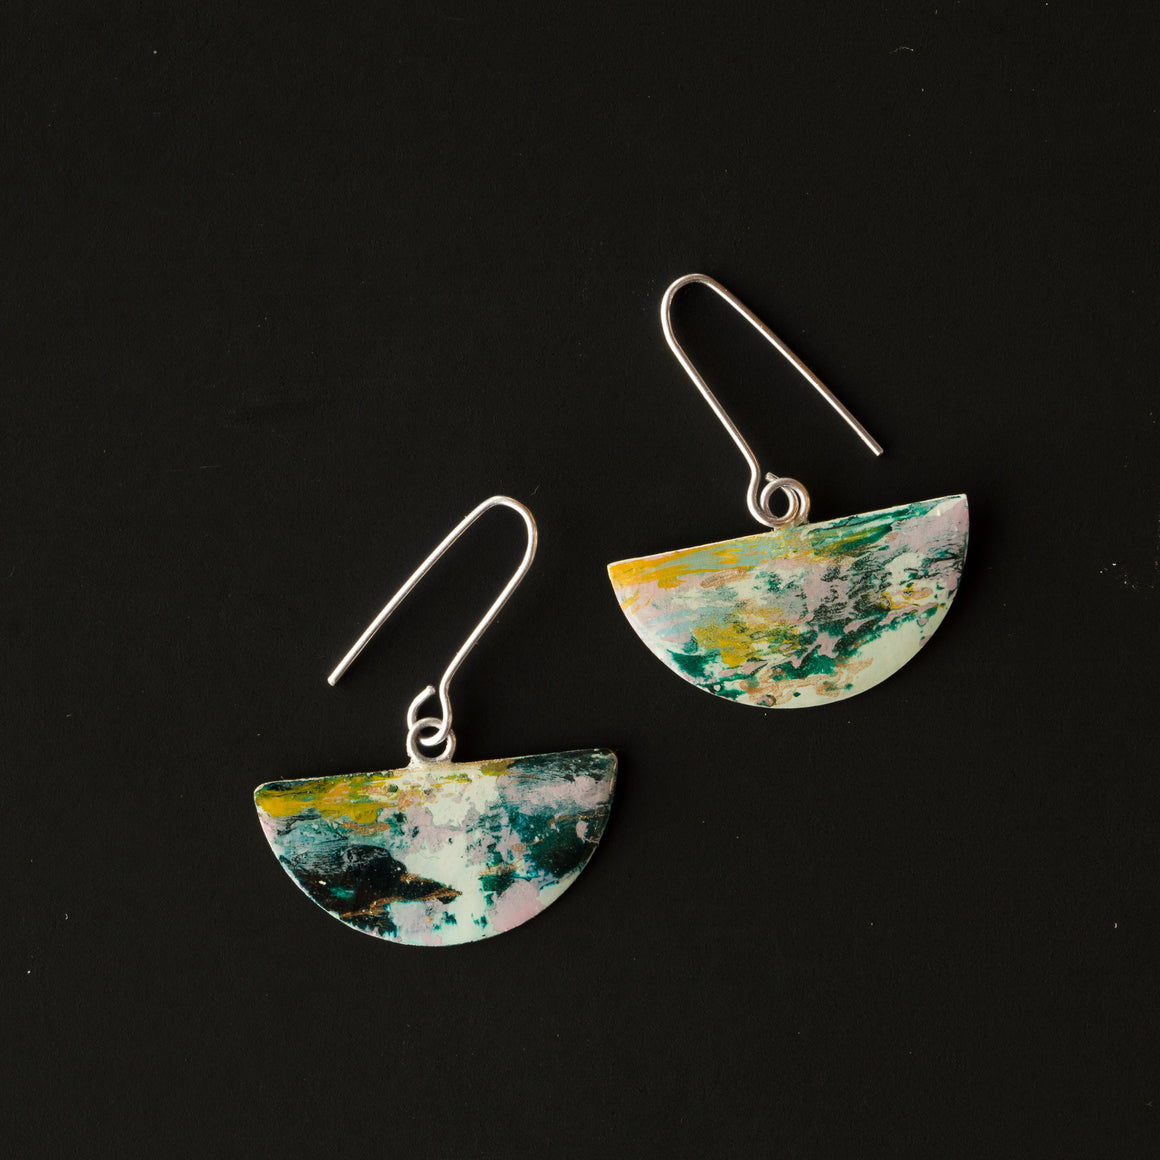 729 - Contemporary Handmade Half-moon Earrings Painted on Brass - Sold by Chic & Basta